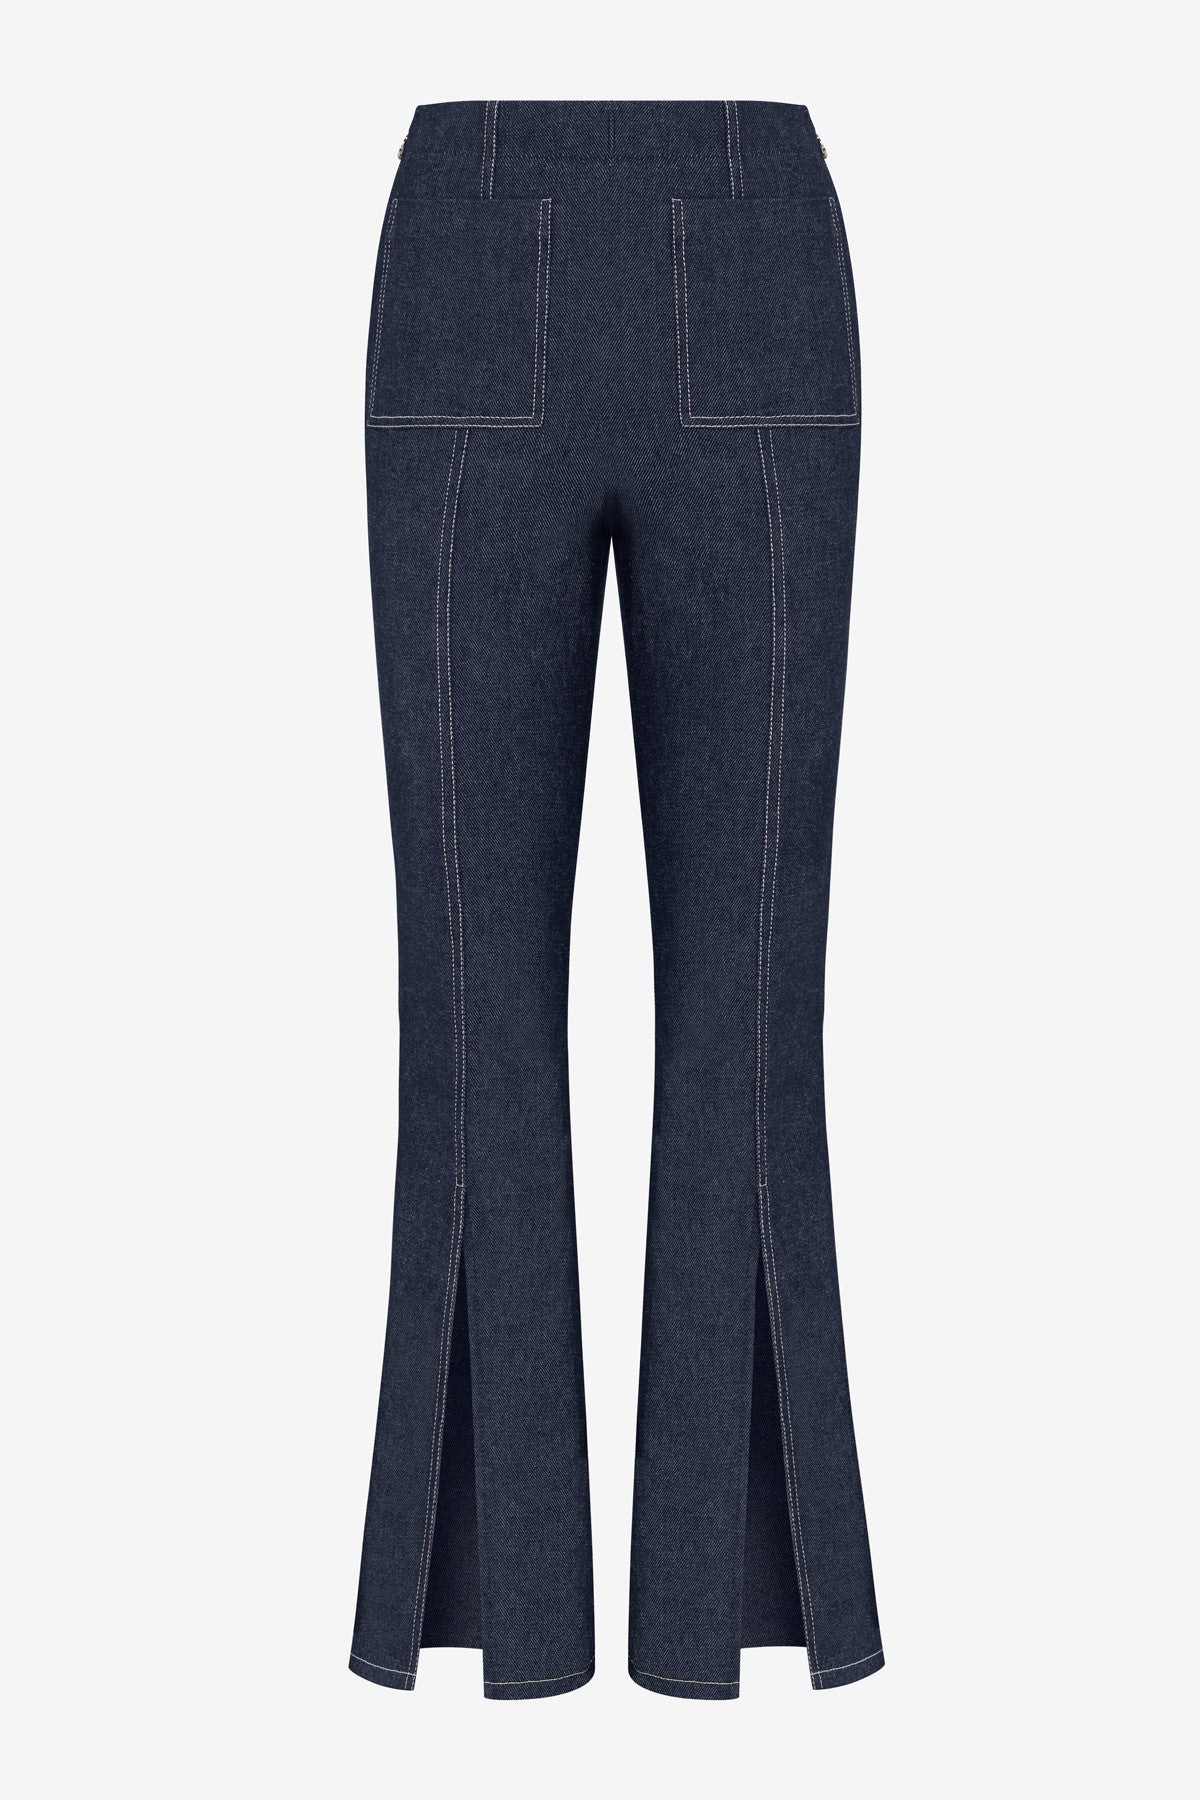 DENIM SLIT PANT